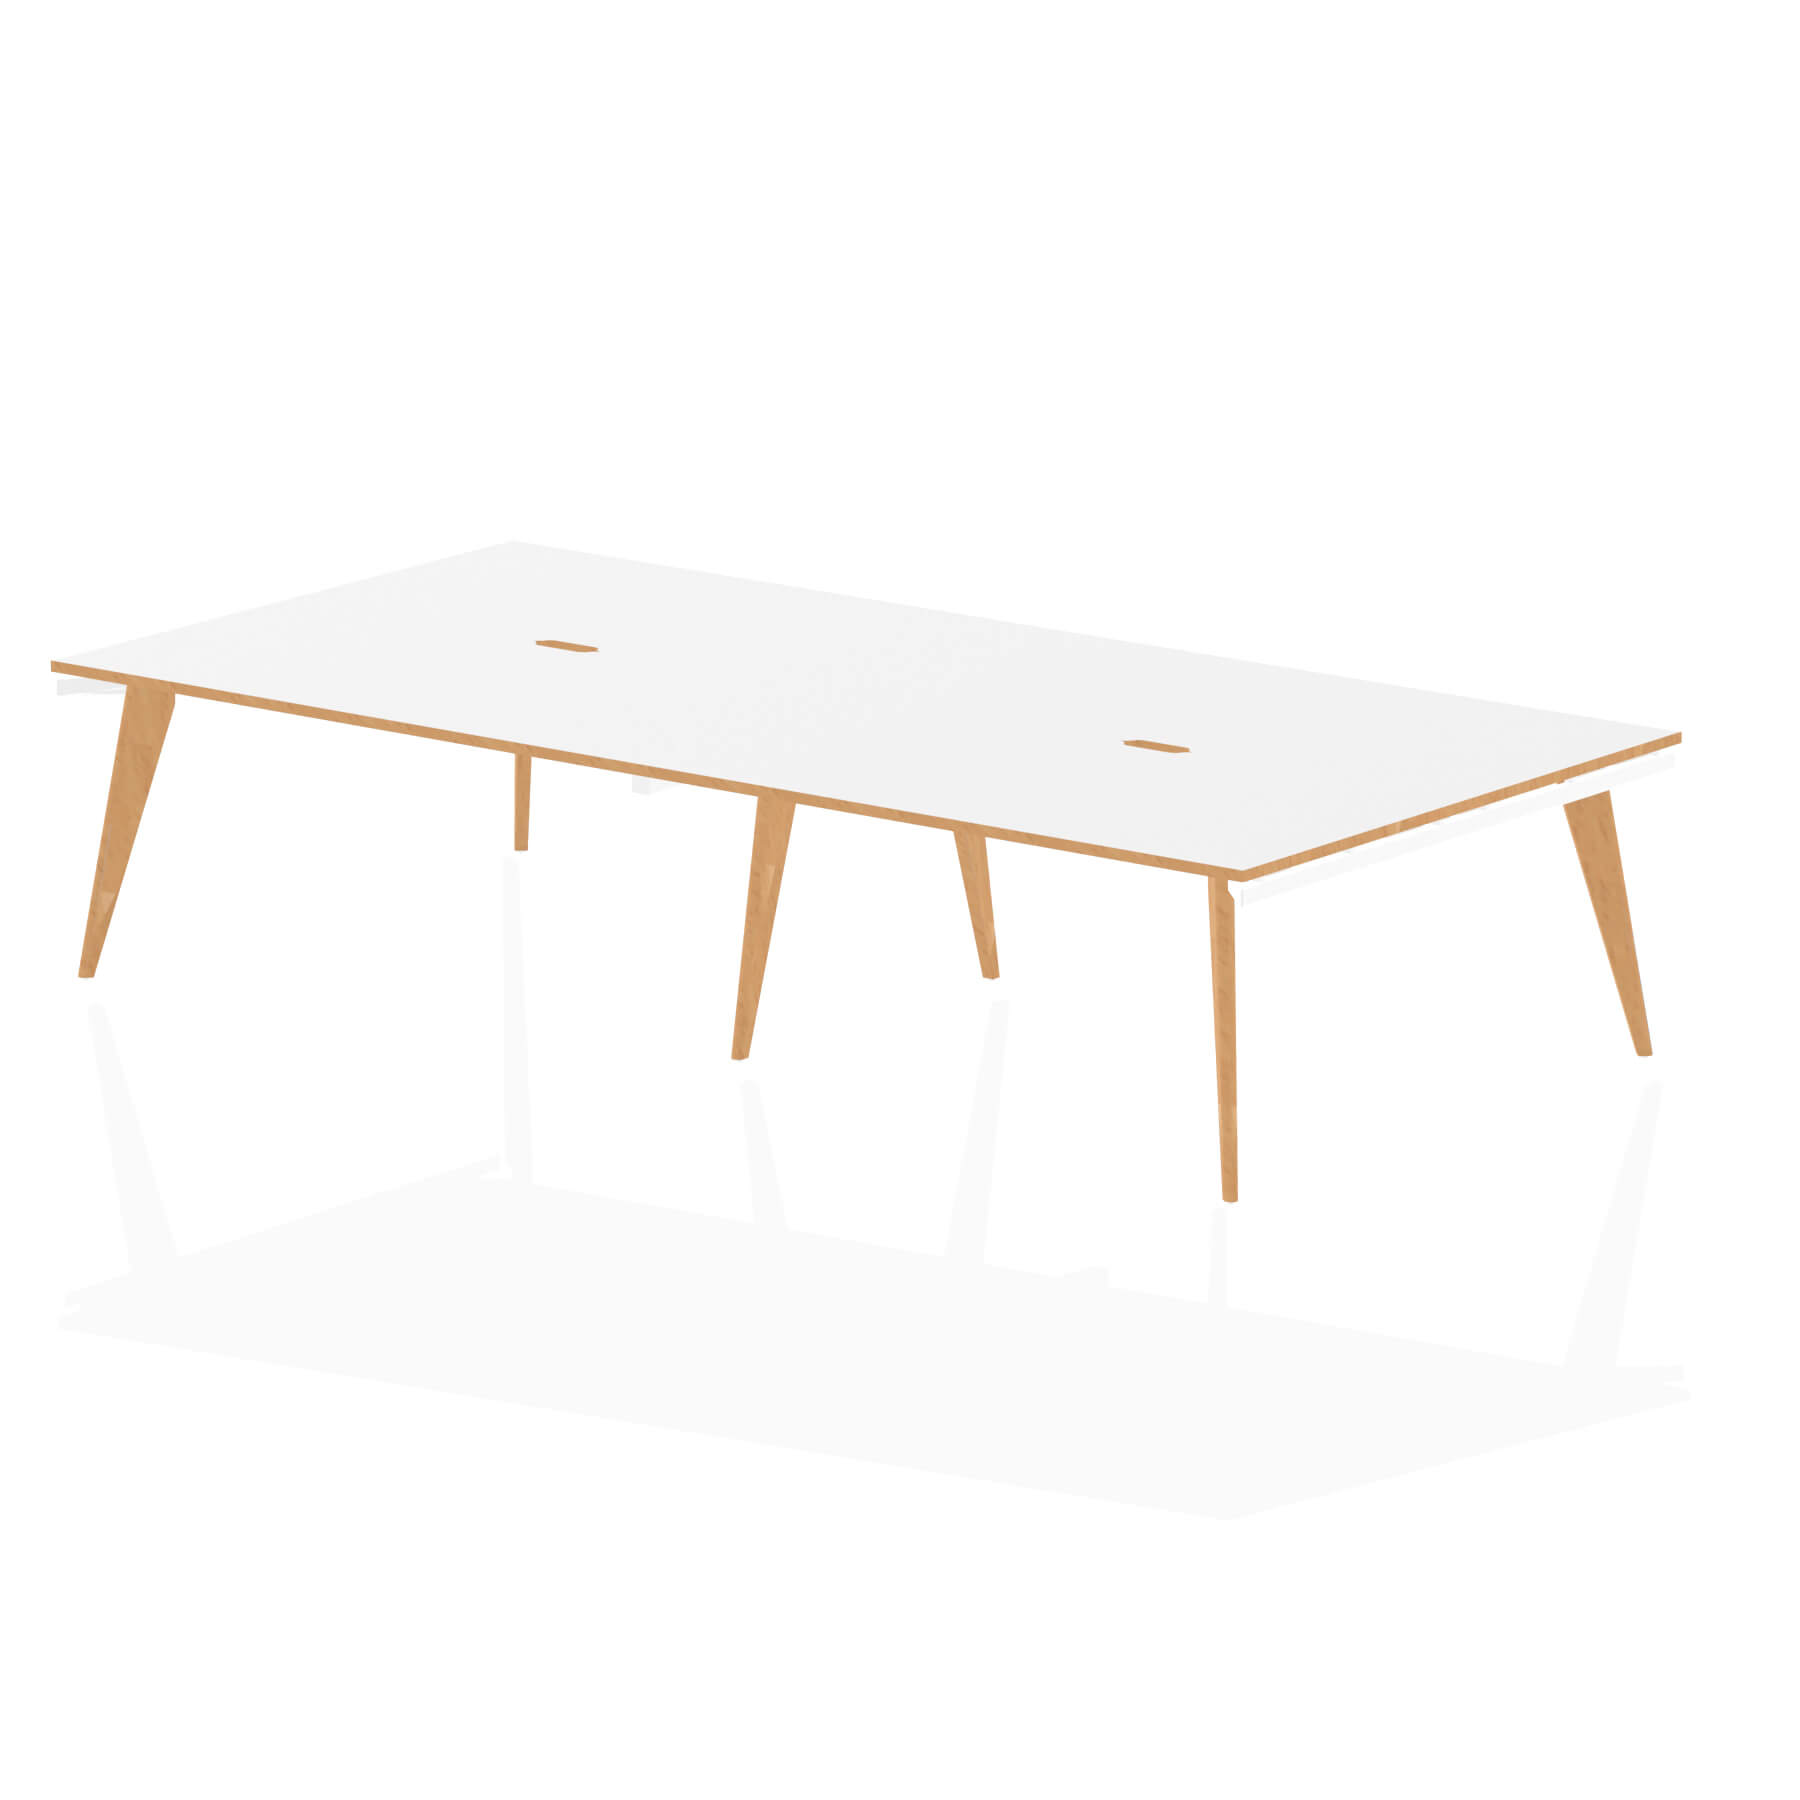 Oslo B2B White Frame Wooden Leg Bench Desk 1400 White With Natural Wood Edge (4 Pod)